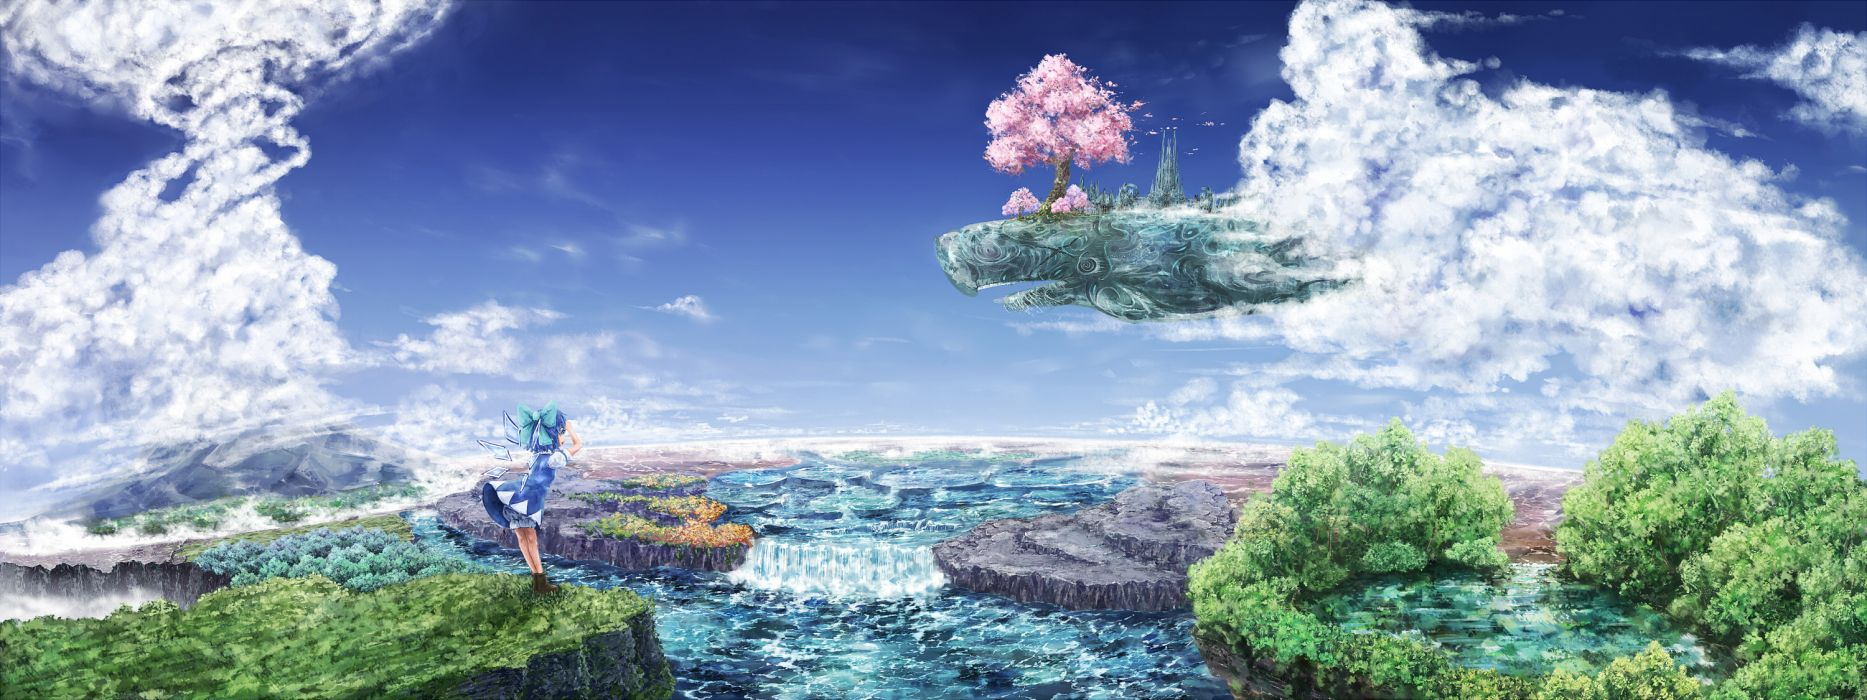 bloomers bow cherry blossoms cirno clouds dress forest landscape petals same scenic sky touhou tree water wallpaper